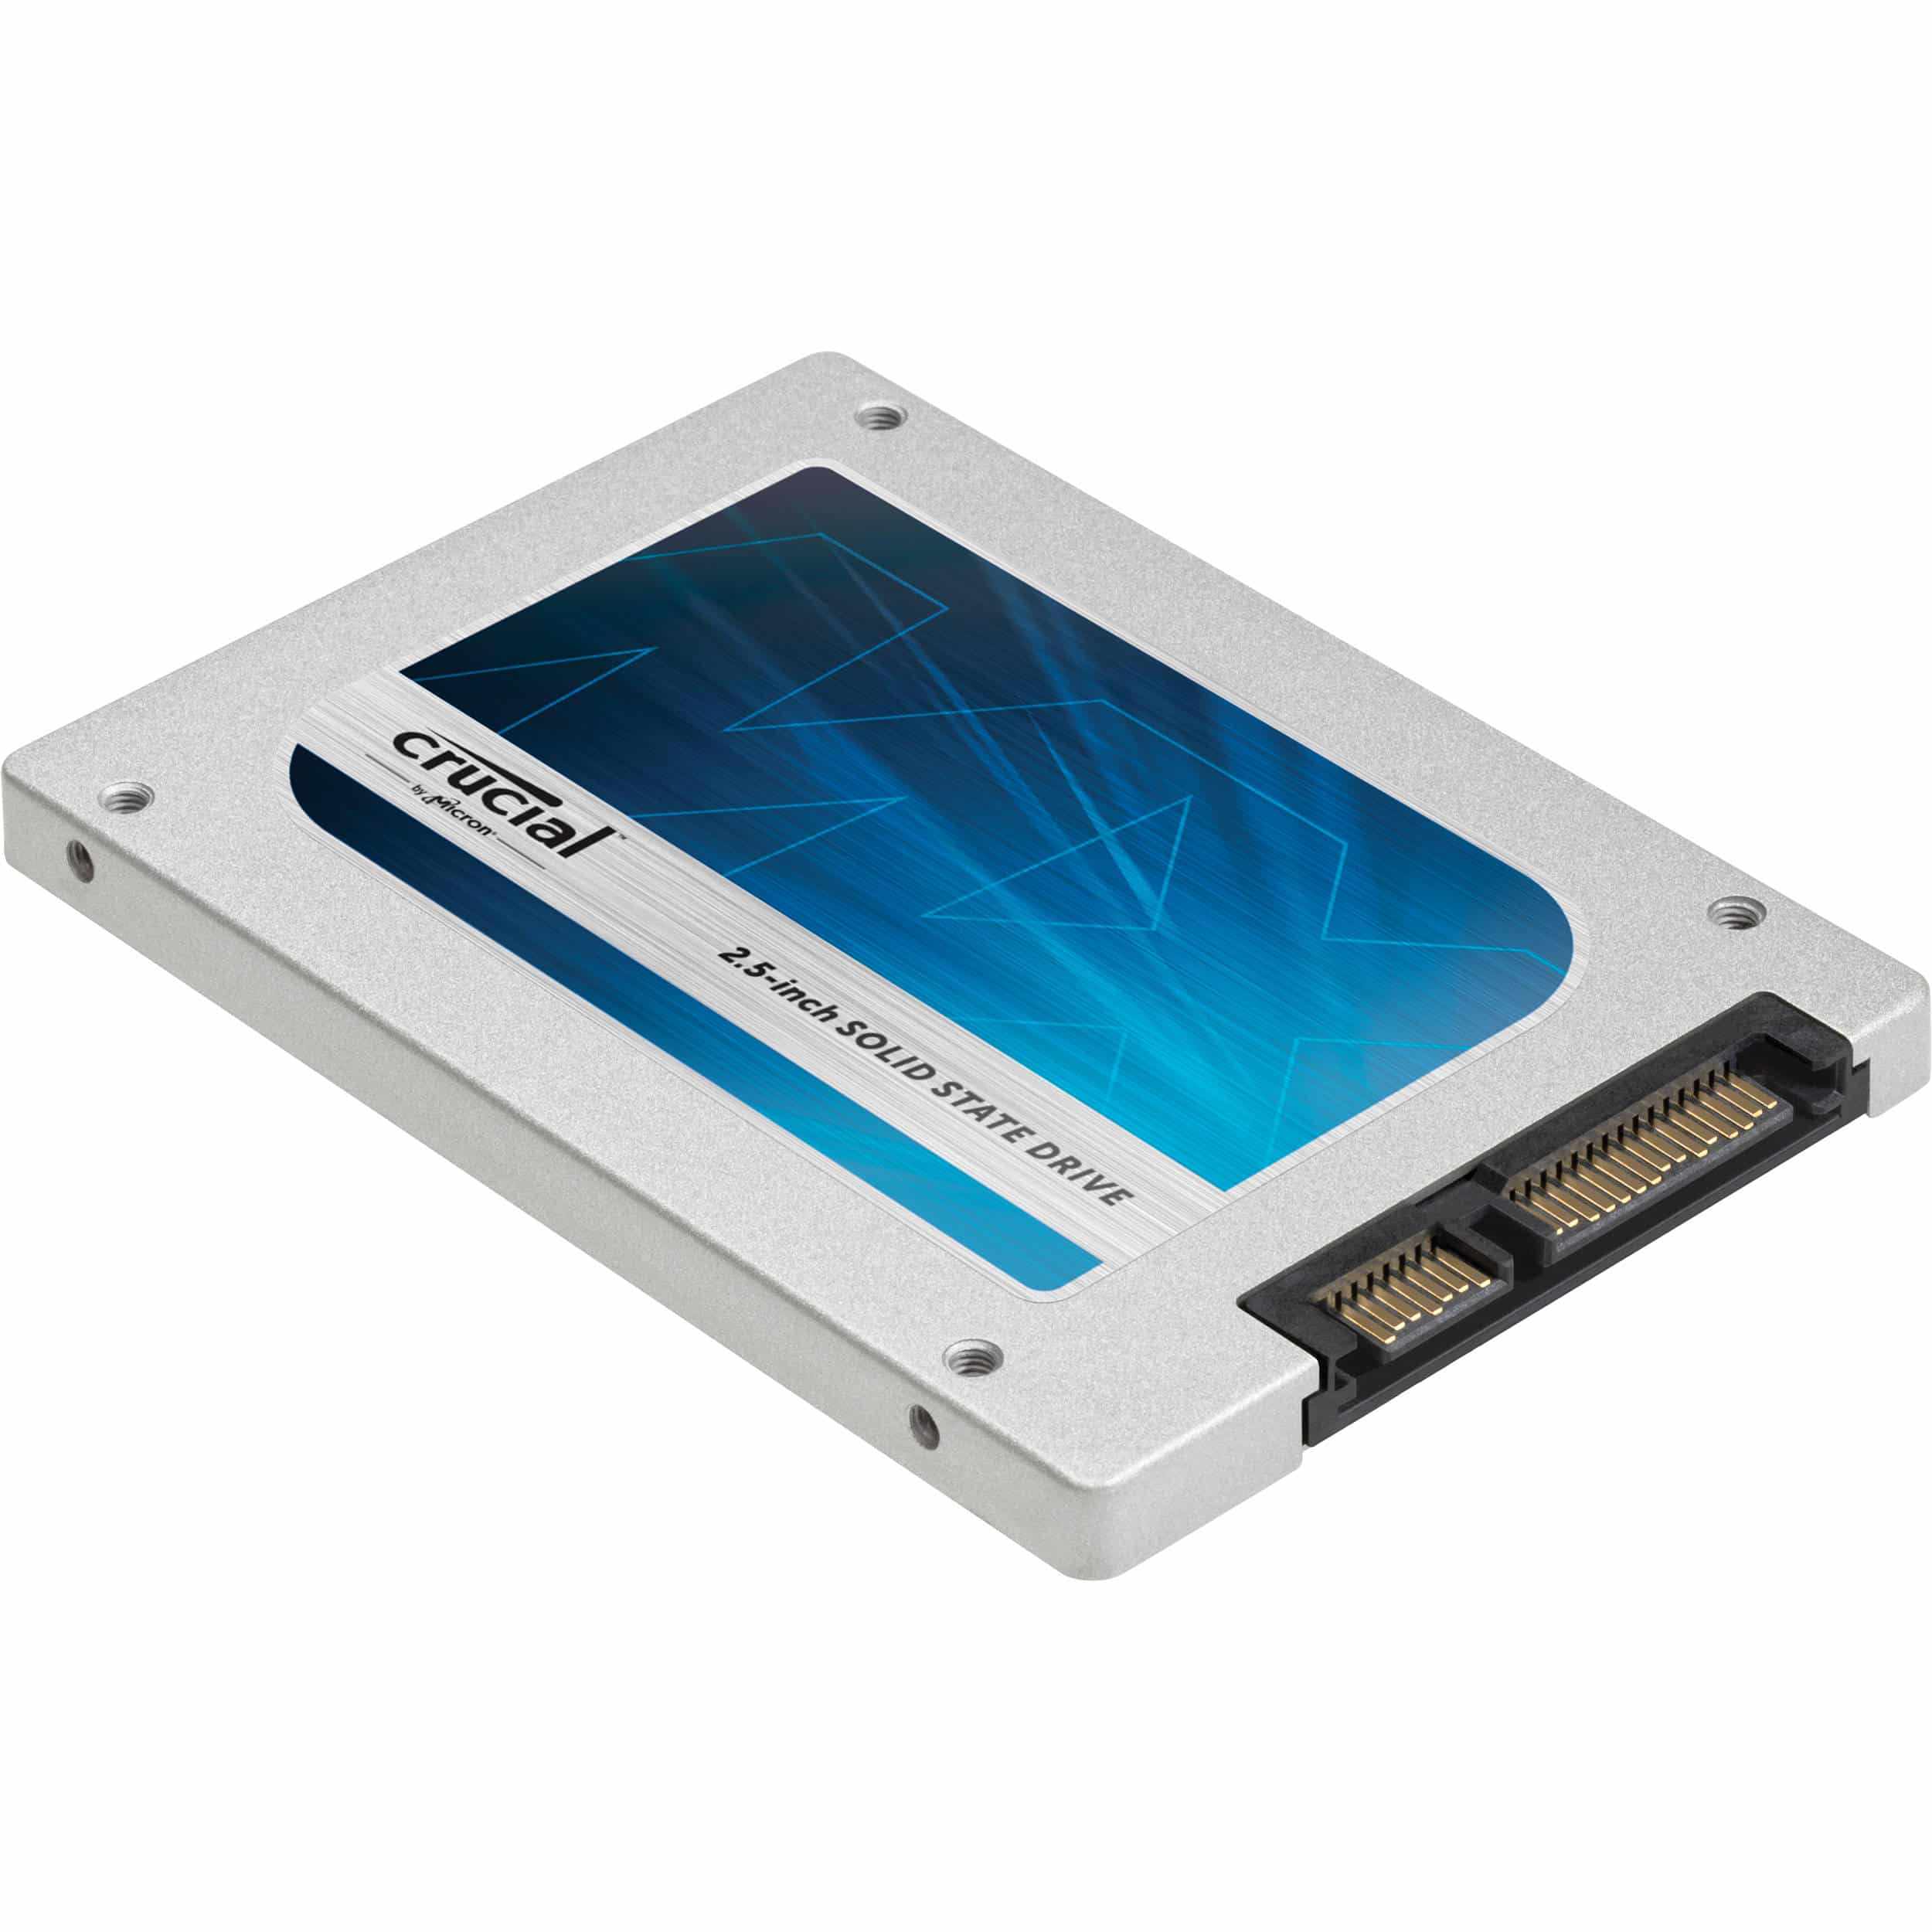 Ổ cứng SSD Crucial